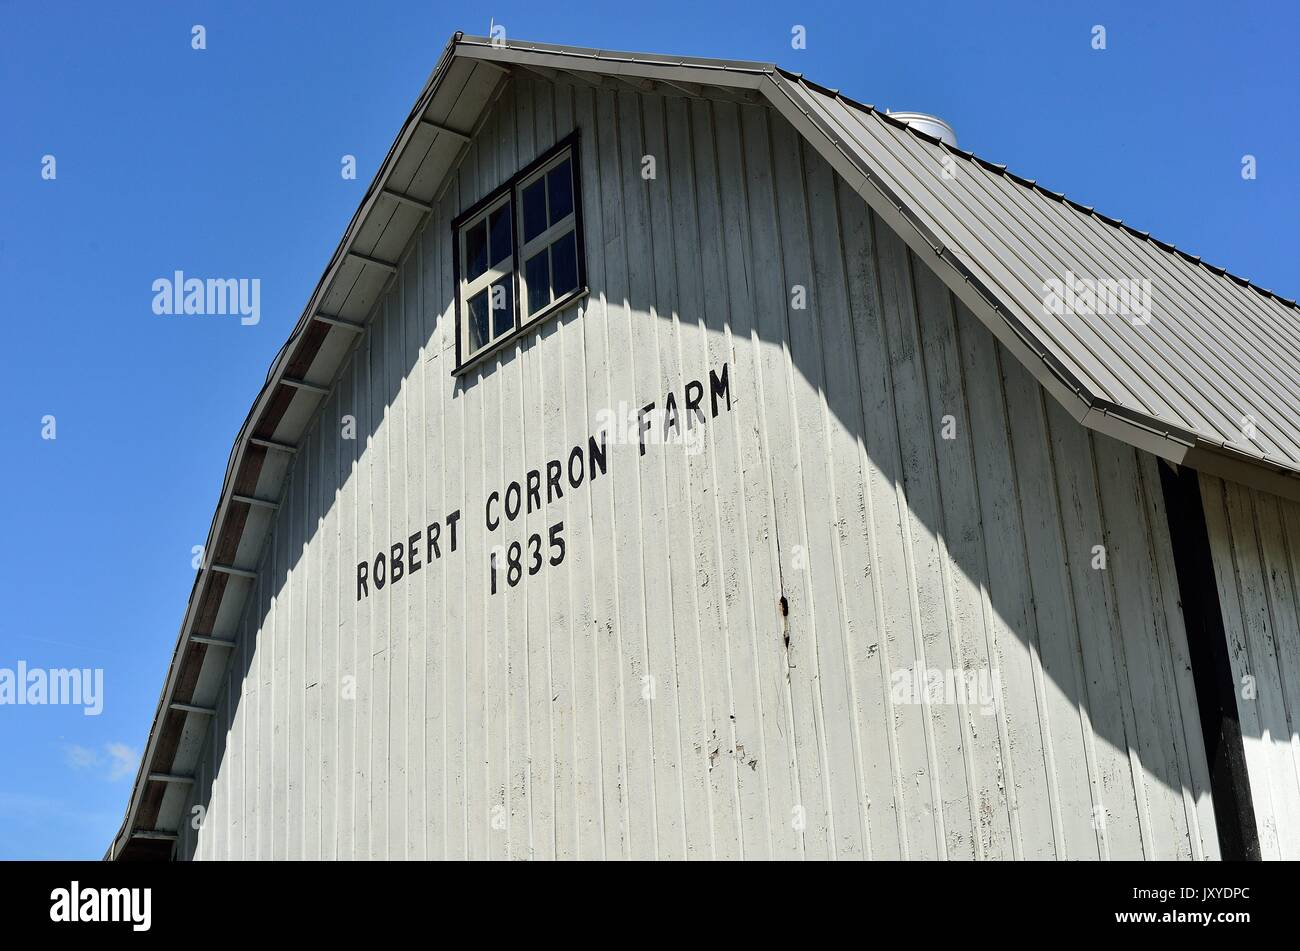 A link to the past and a farm's origins appears on the side of one of the spread's large storage barns. St. Charles, Illinois, USA. - Stock Image